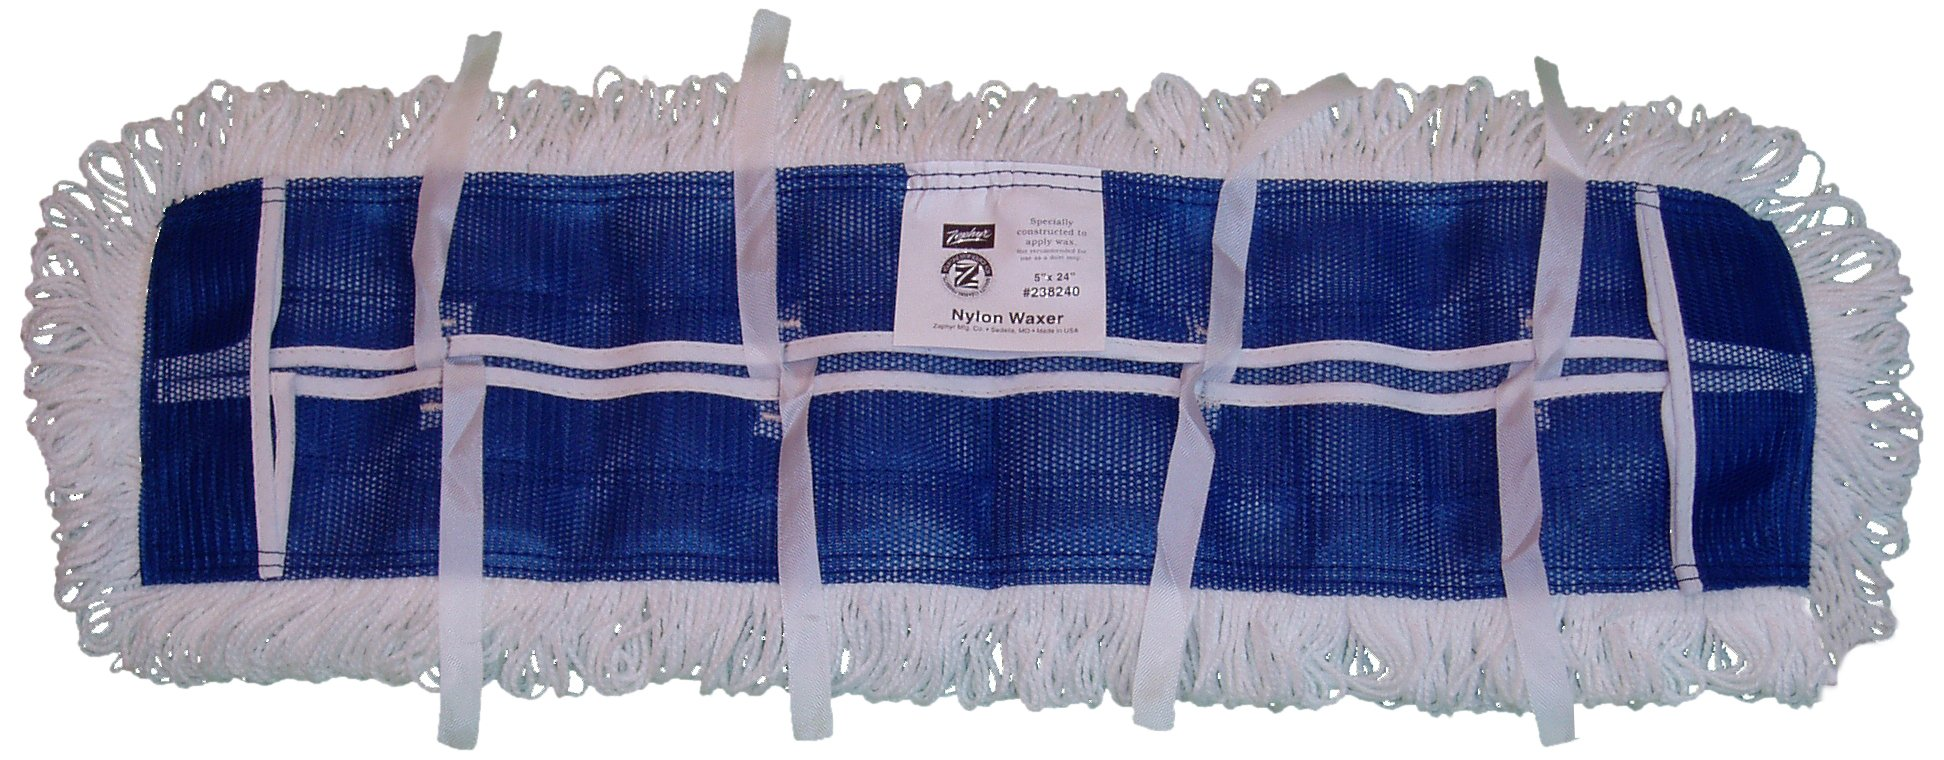 Zephyr 23818 Nylon Dura-Waxer Flat Mop Heads, 18'' Length x 5'' Width (Pack of 6) by Zephyr (Image #1)